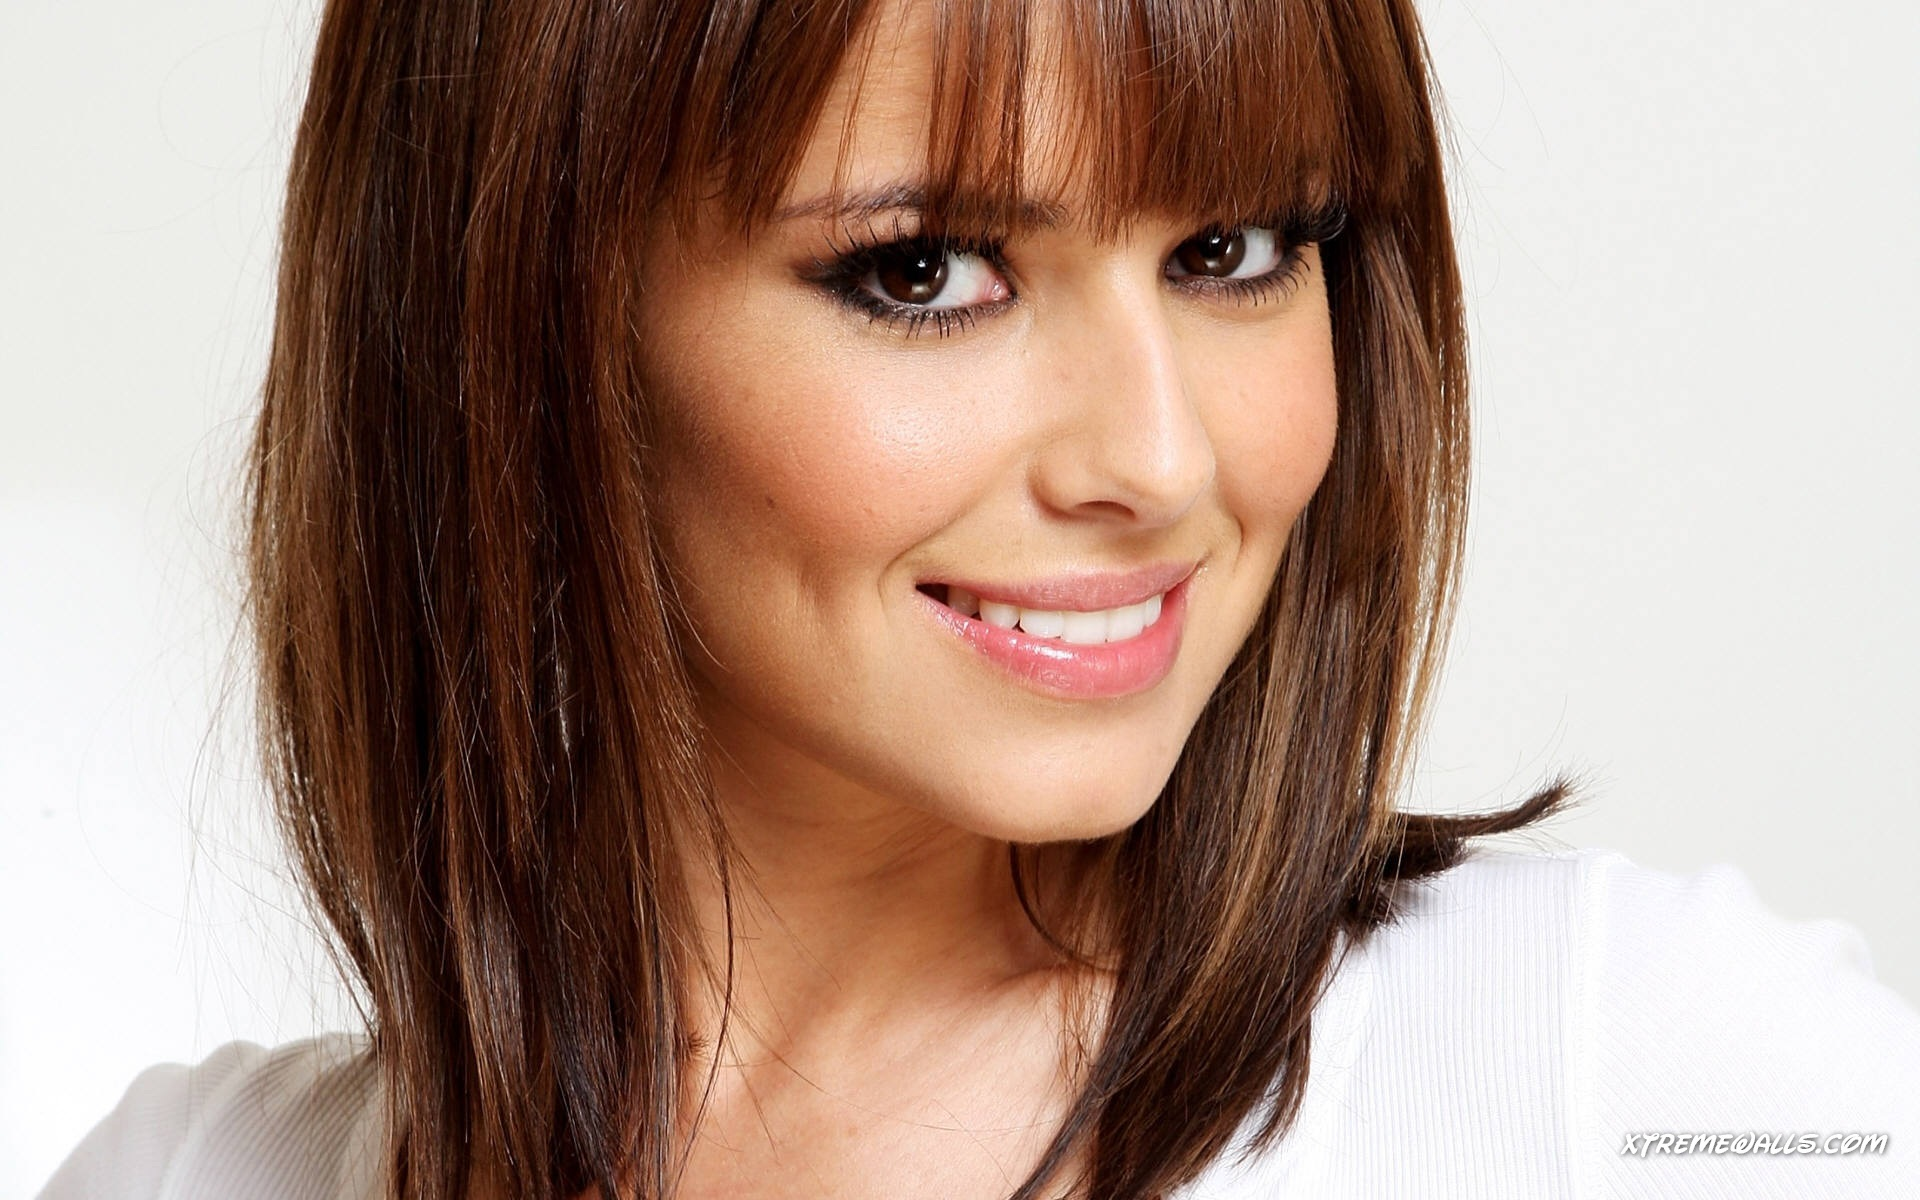 cheryl cole pozadia dream background landscapes tapety strana y